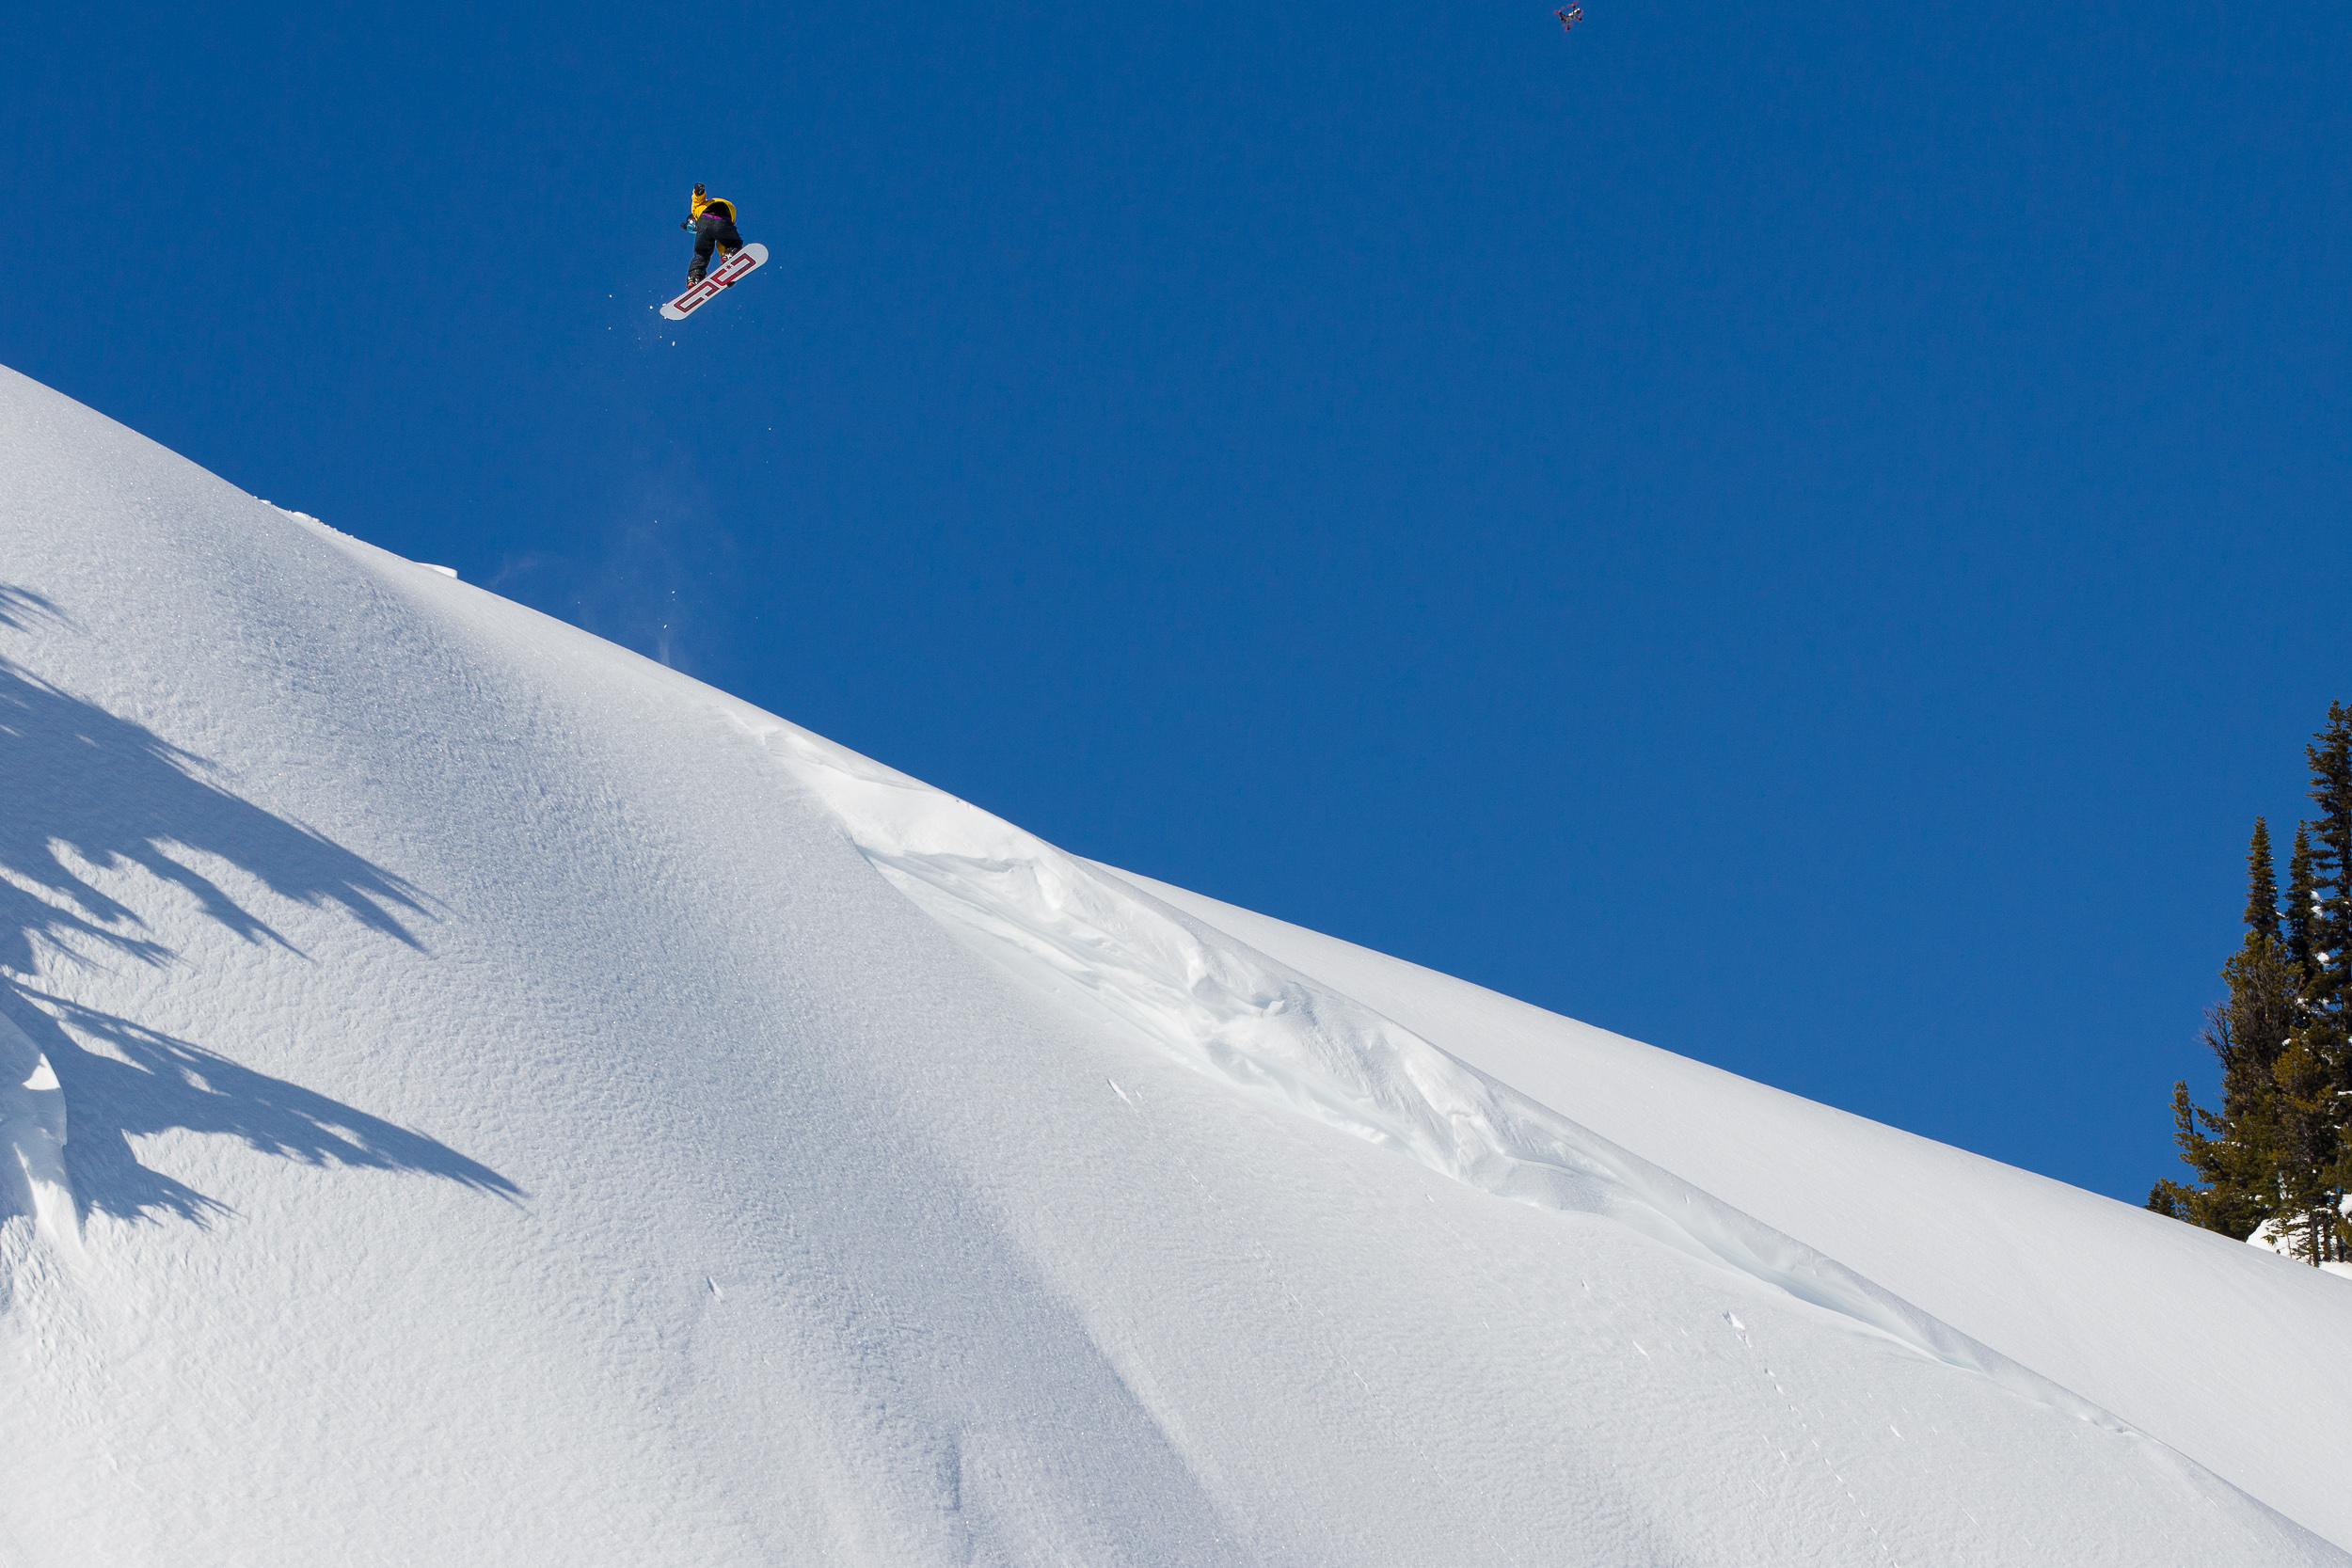 DC Transitors Episode 4: Epic Conditions in the Whistler Backcountry